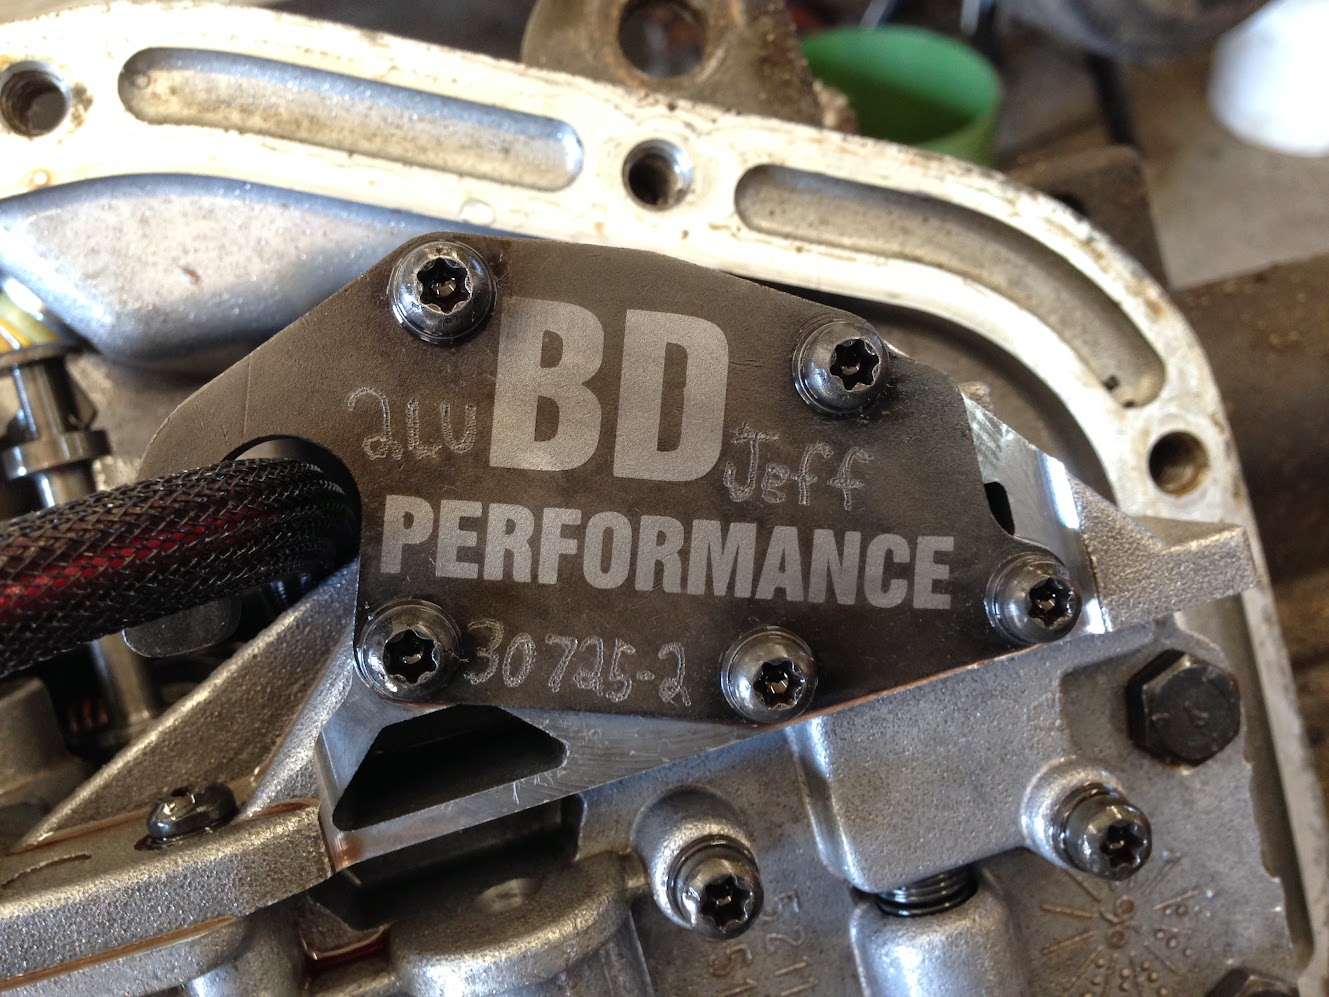 47RE BD valve body and quick fill valve compatibility